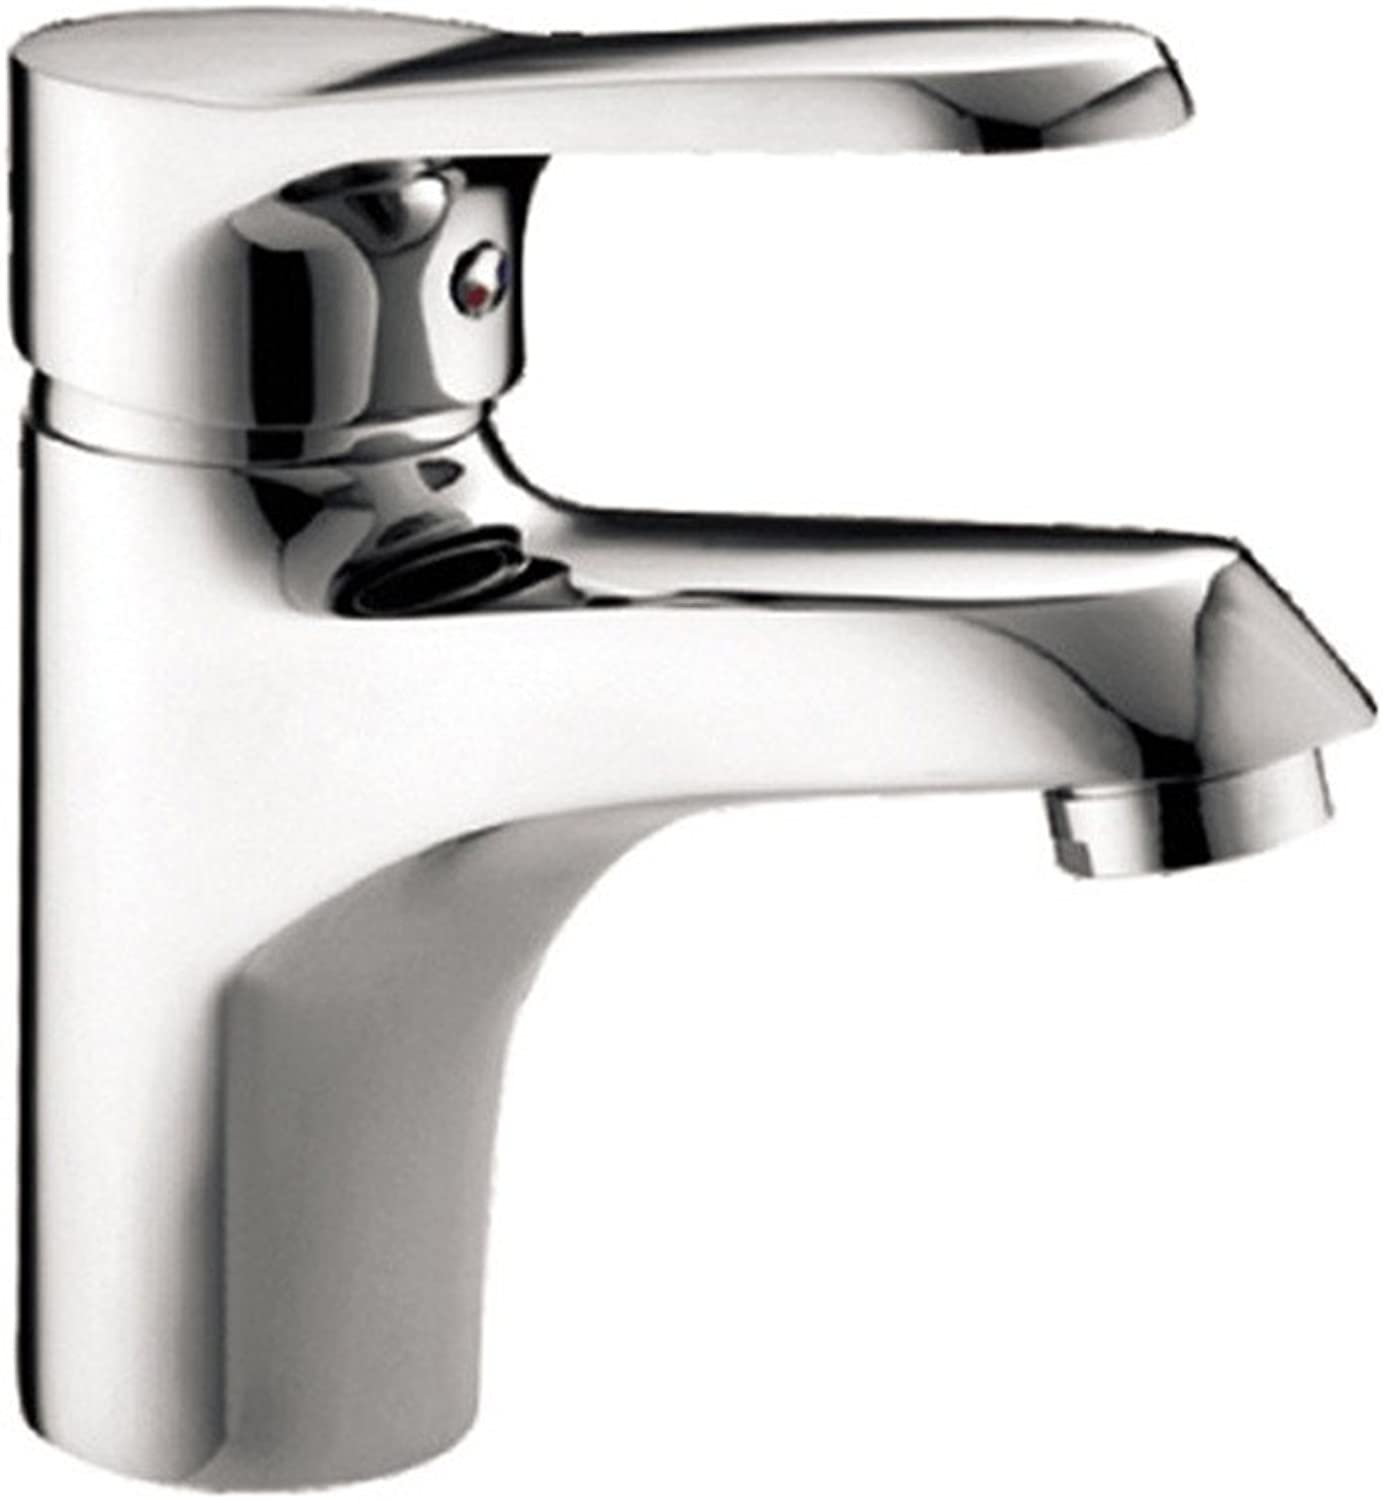 LHbox Basin Mixer Tap Bathroom Sink Faucet The copper material single hole of hot and cold water basin mixer basin mixer on low).